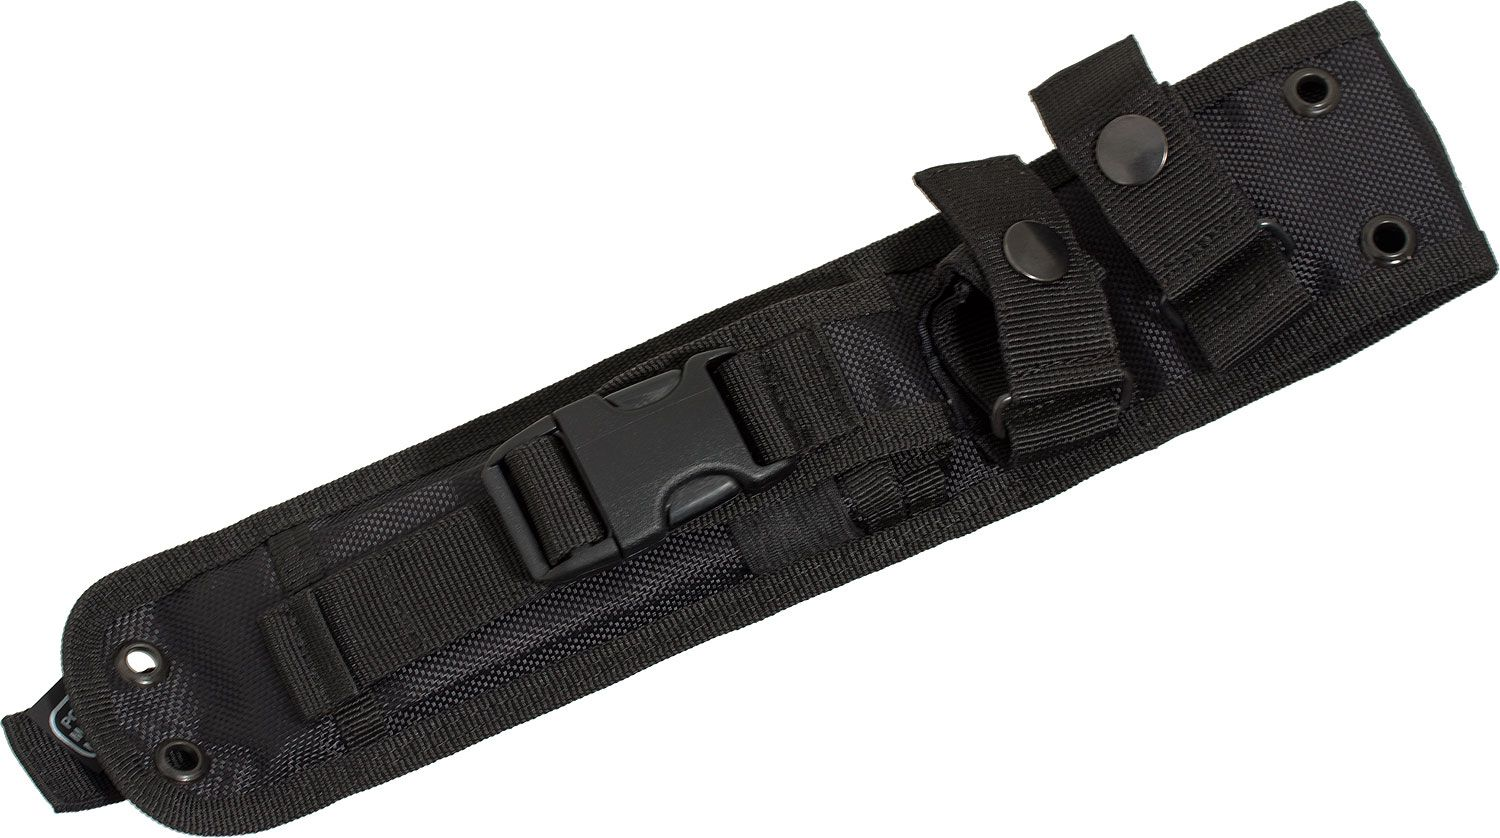 Ontario Nylon MOLLE Back Sheath Fits Ranger NS4, RD4 and TFI